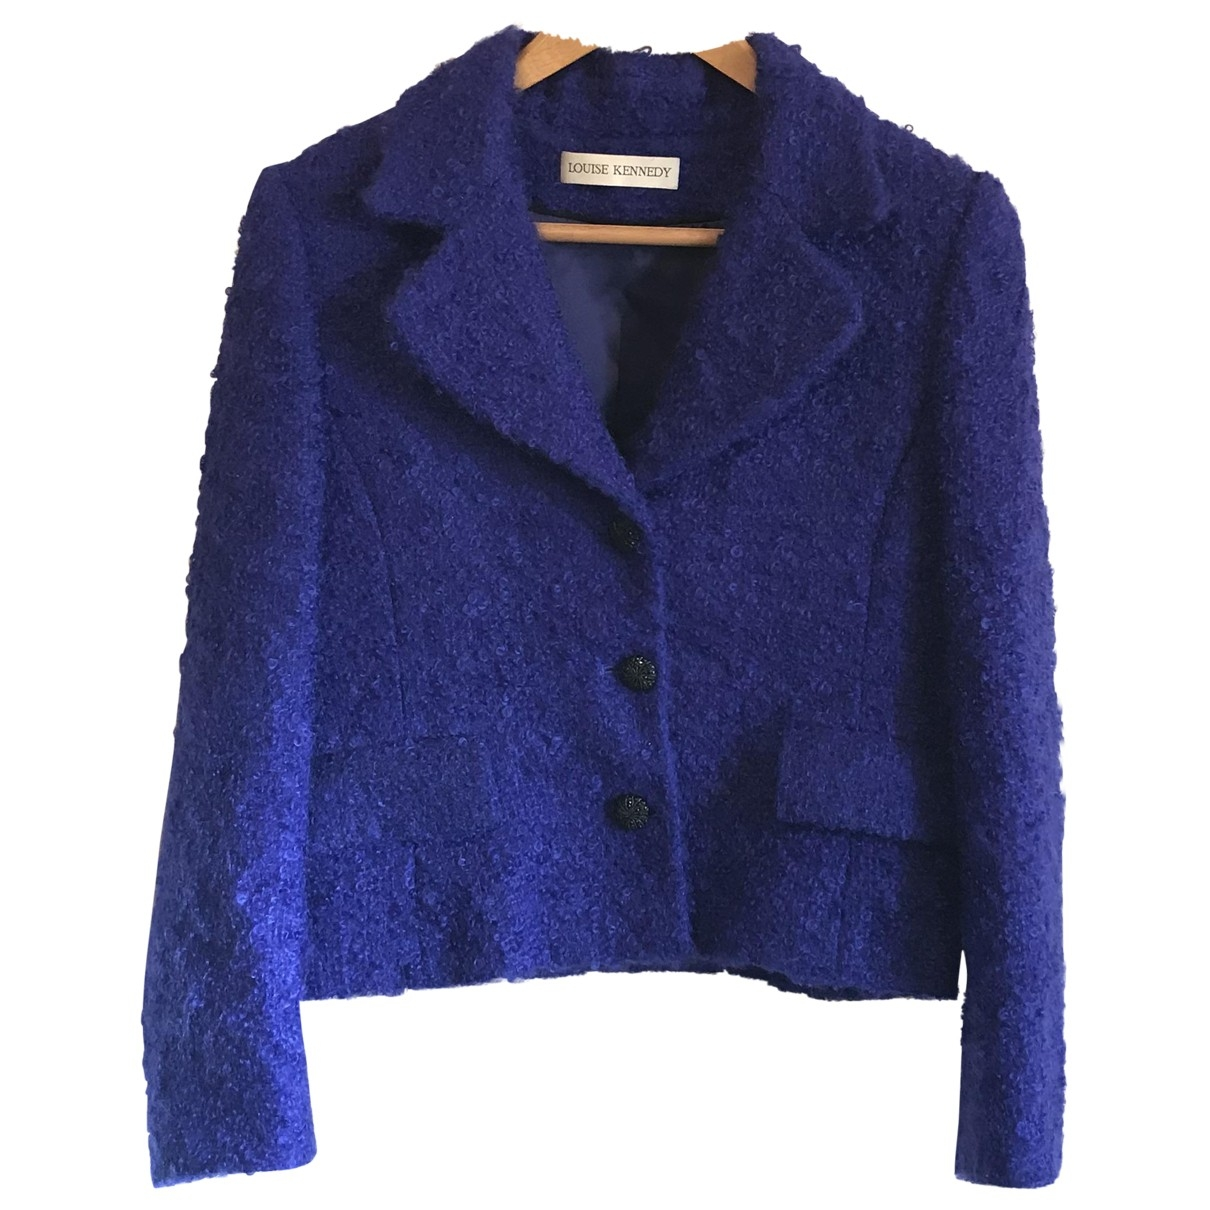 Louise Kennedy \N Jacke in  Blau Wolle